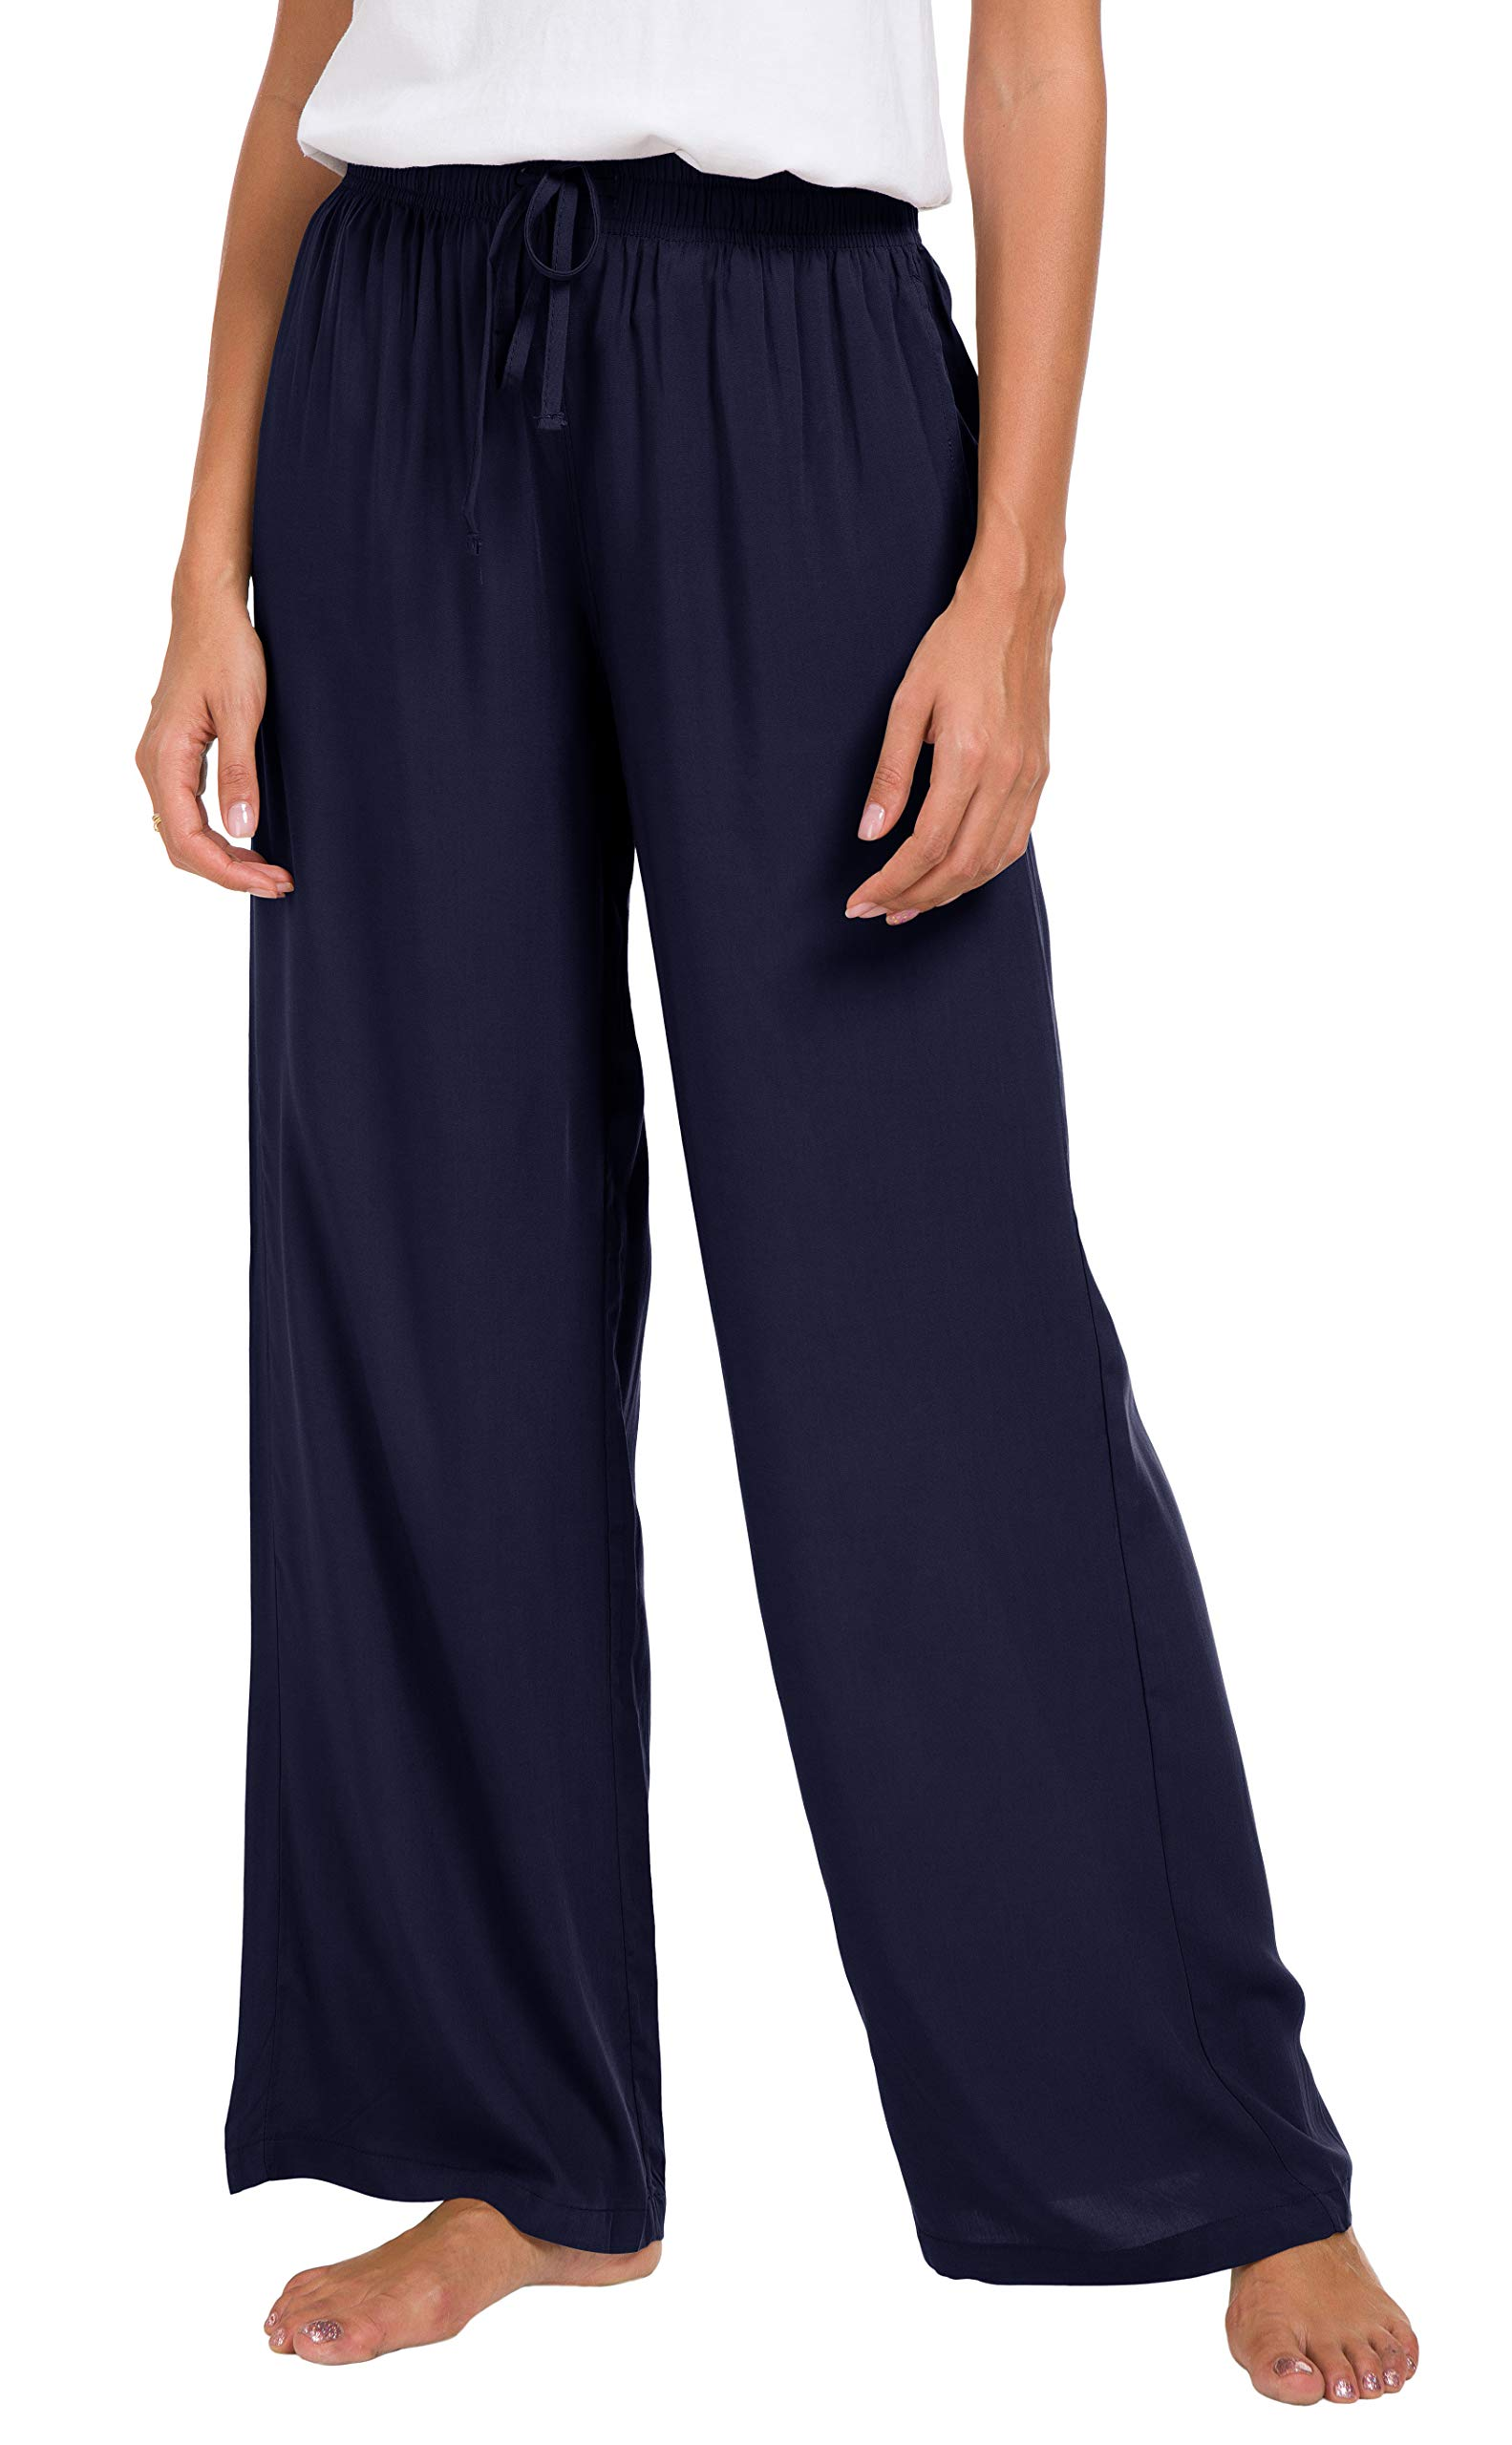 Urban CoCo Women's Solid Color Drawstring Lounge Pants (L, Navy Blue)